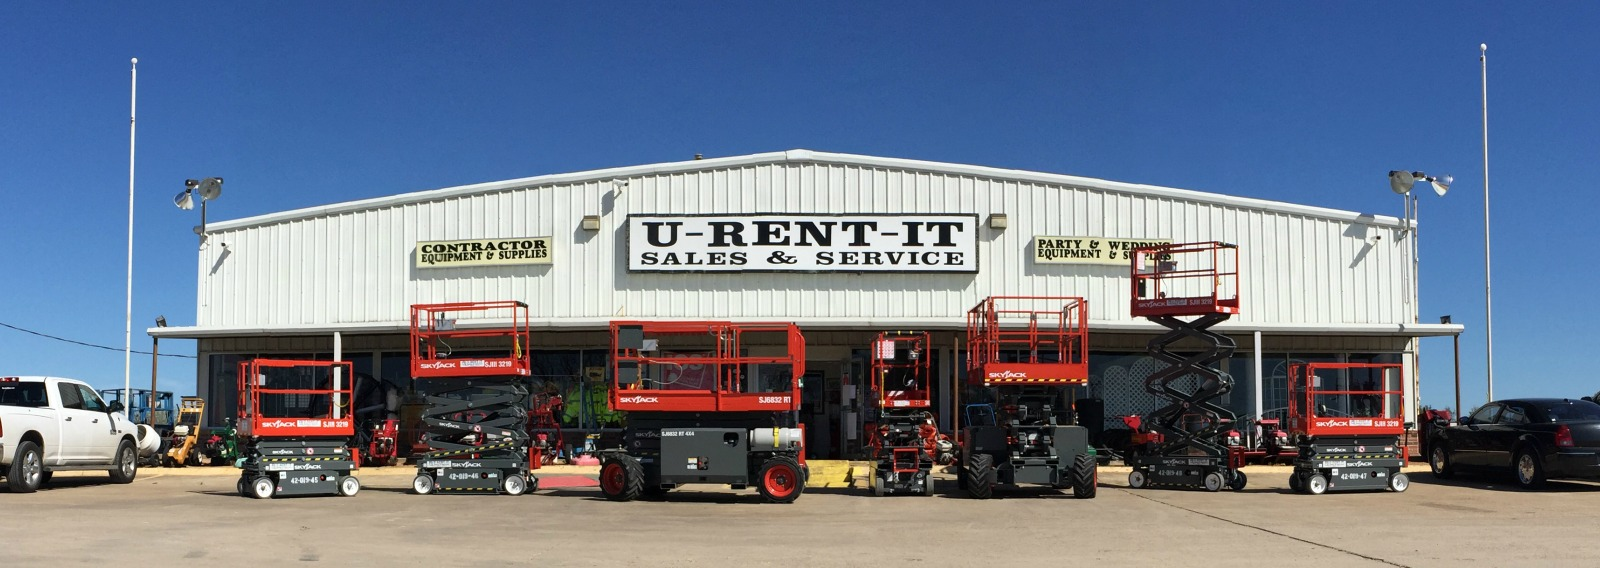 Contractor rentals in Terrell, Rockwall, Gun Barrel City and Mabank Texas